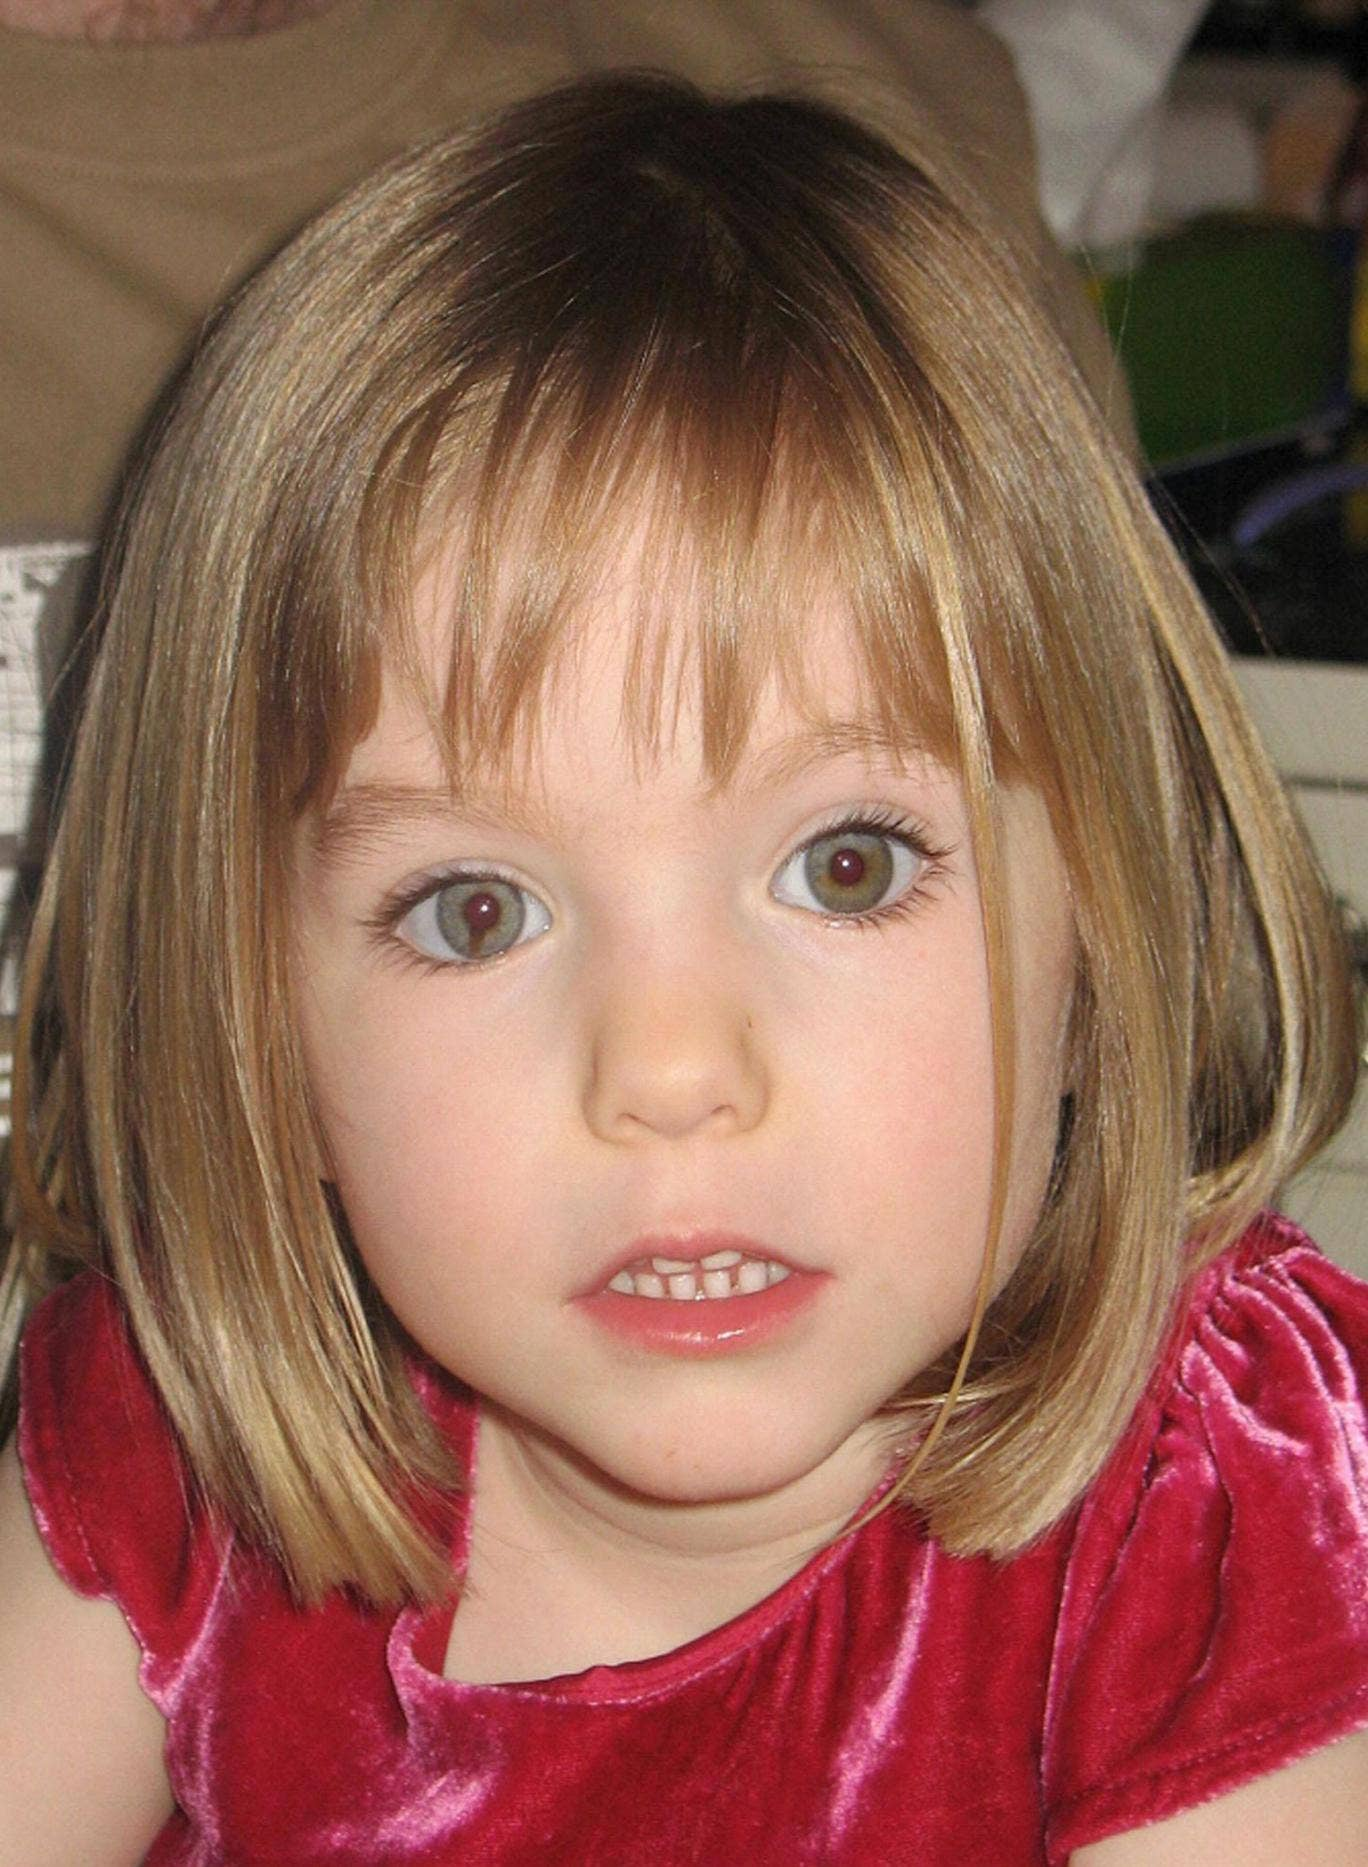 Madeleine McCann, who disappeared in the Praia de Lux resort in Portugal